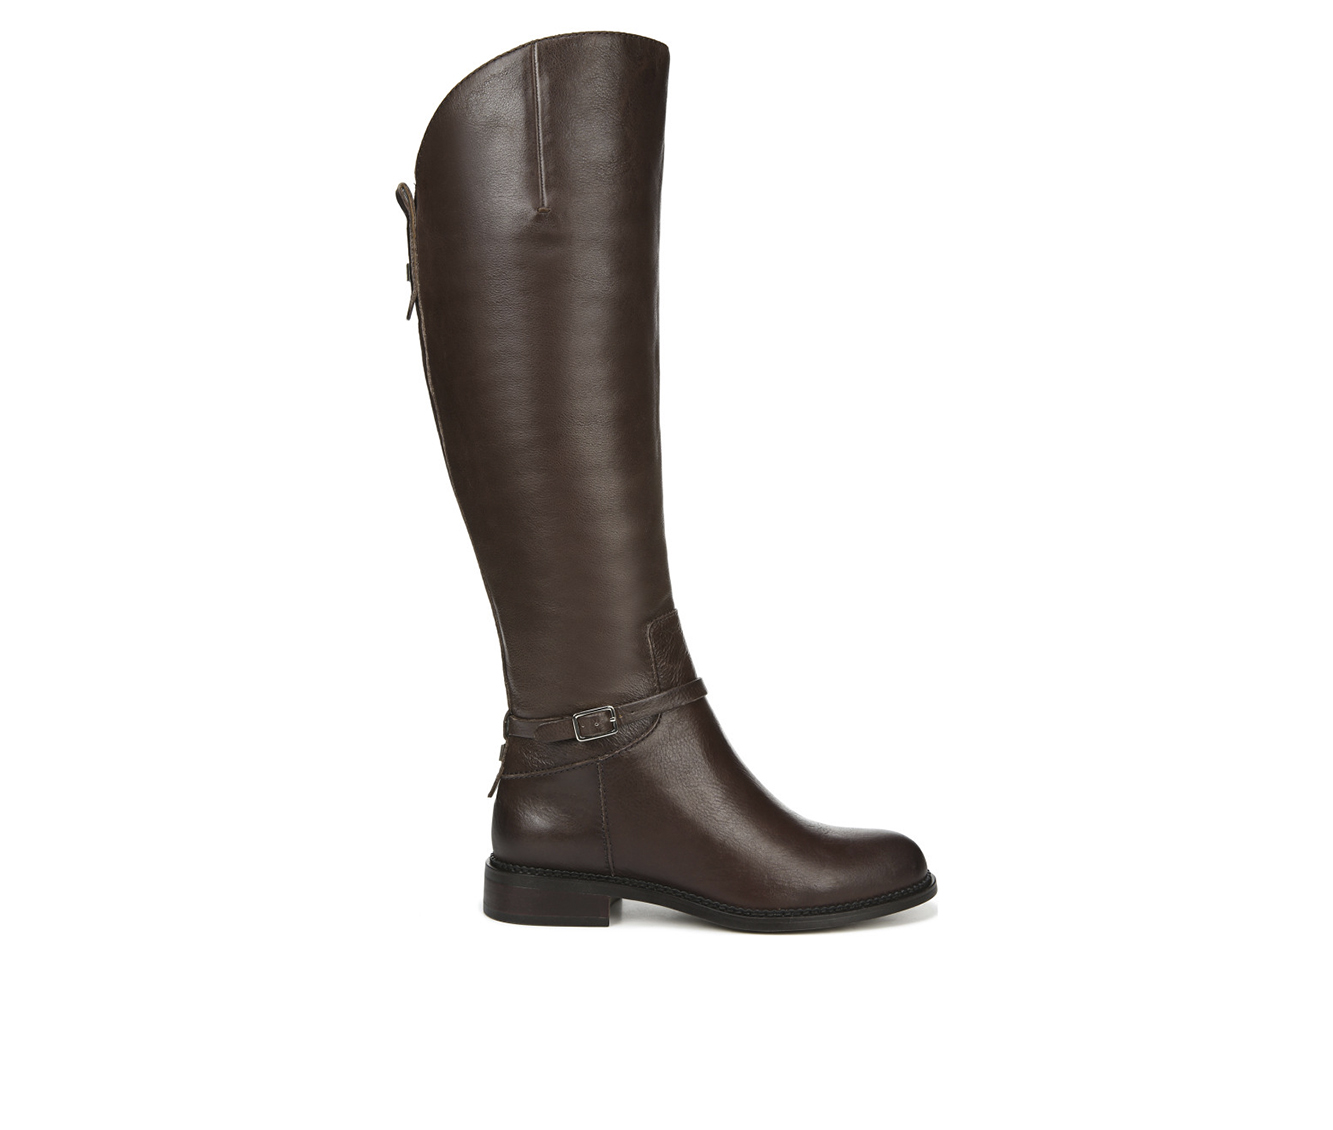 Franco Sarto Haylie Women's Boots (Brown - Leather)